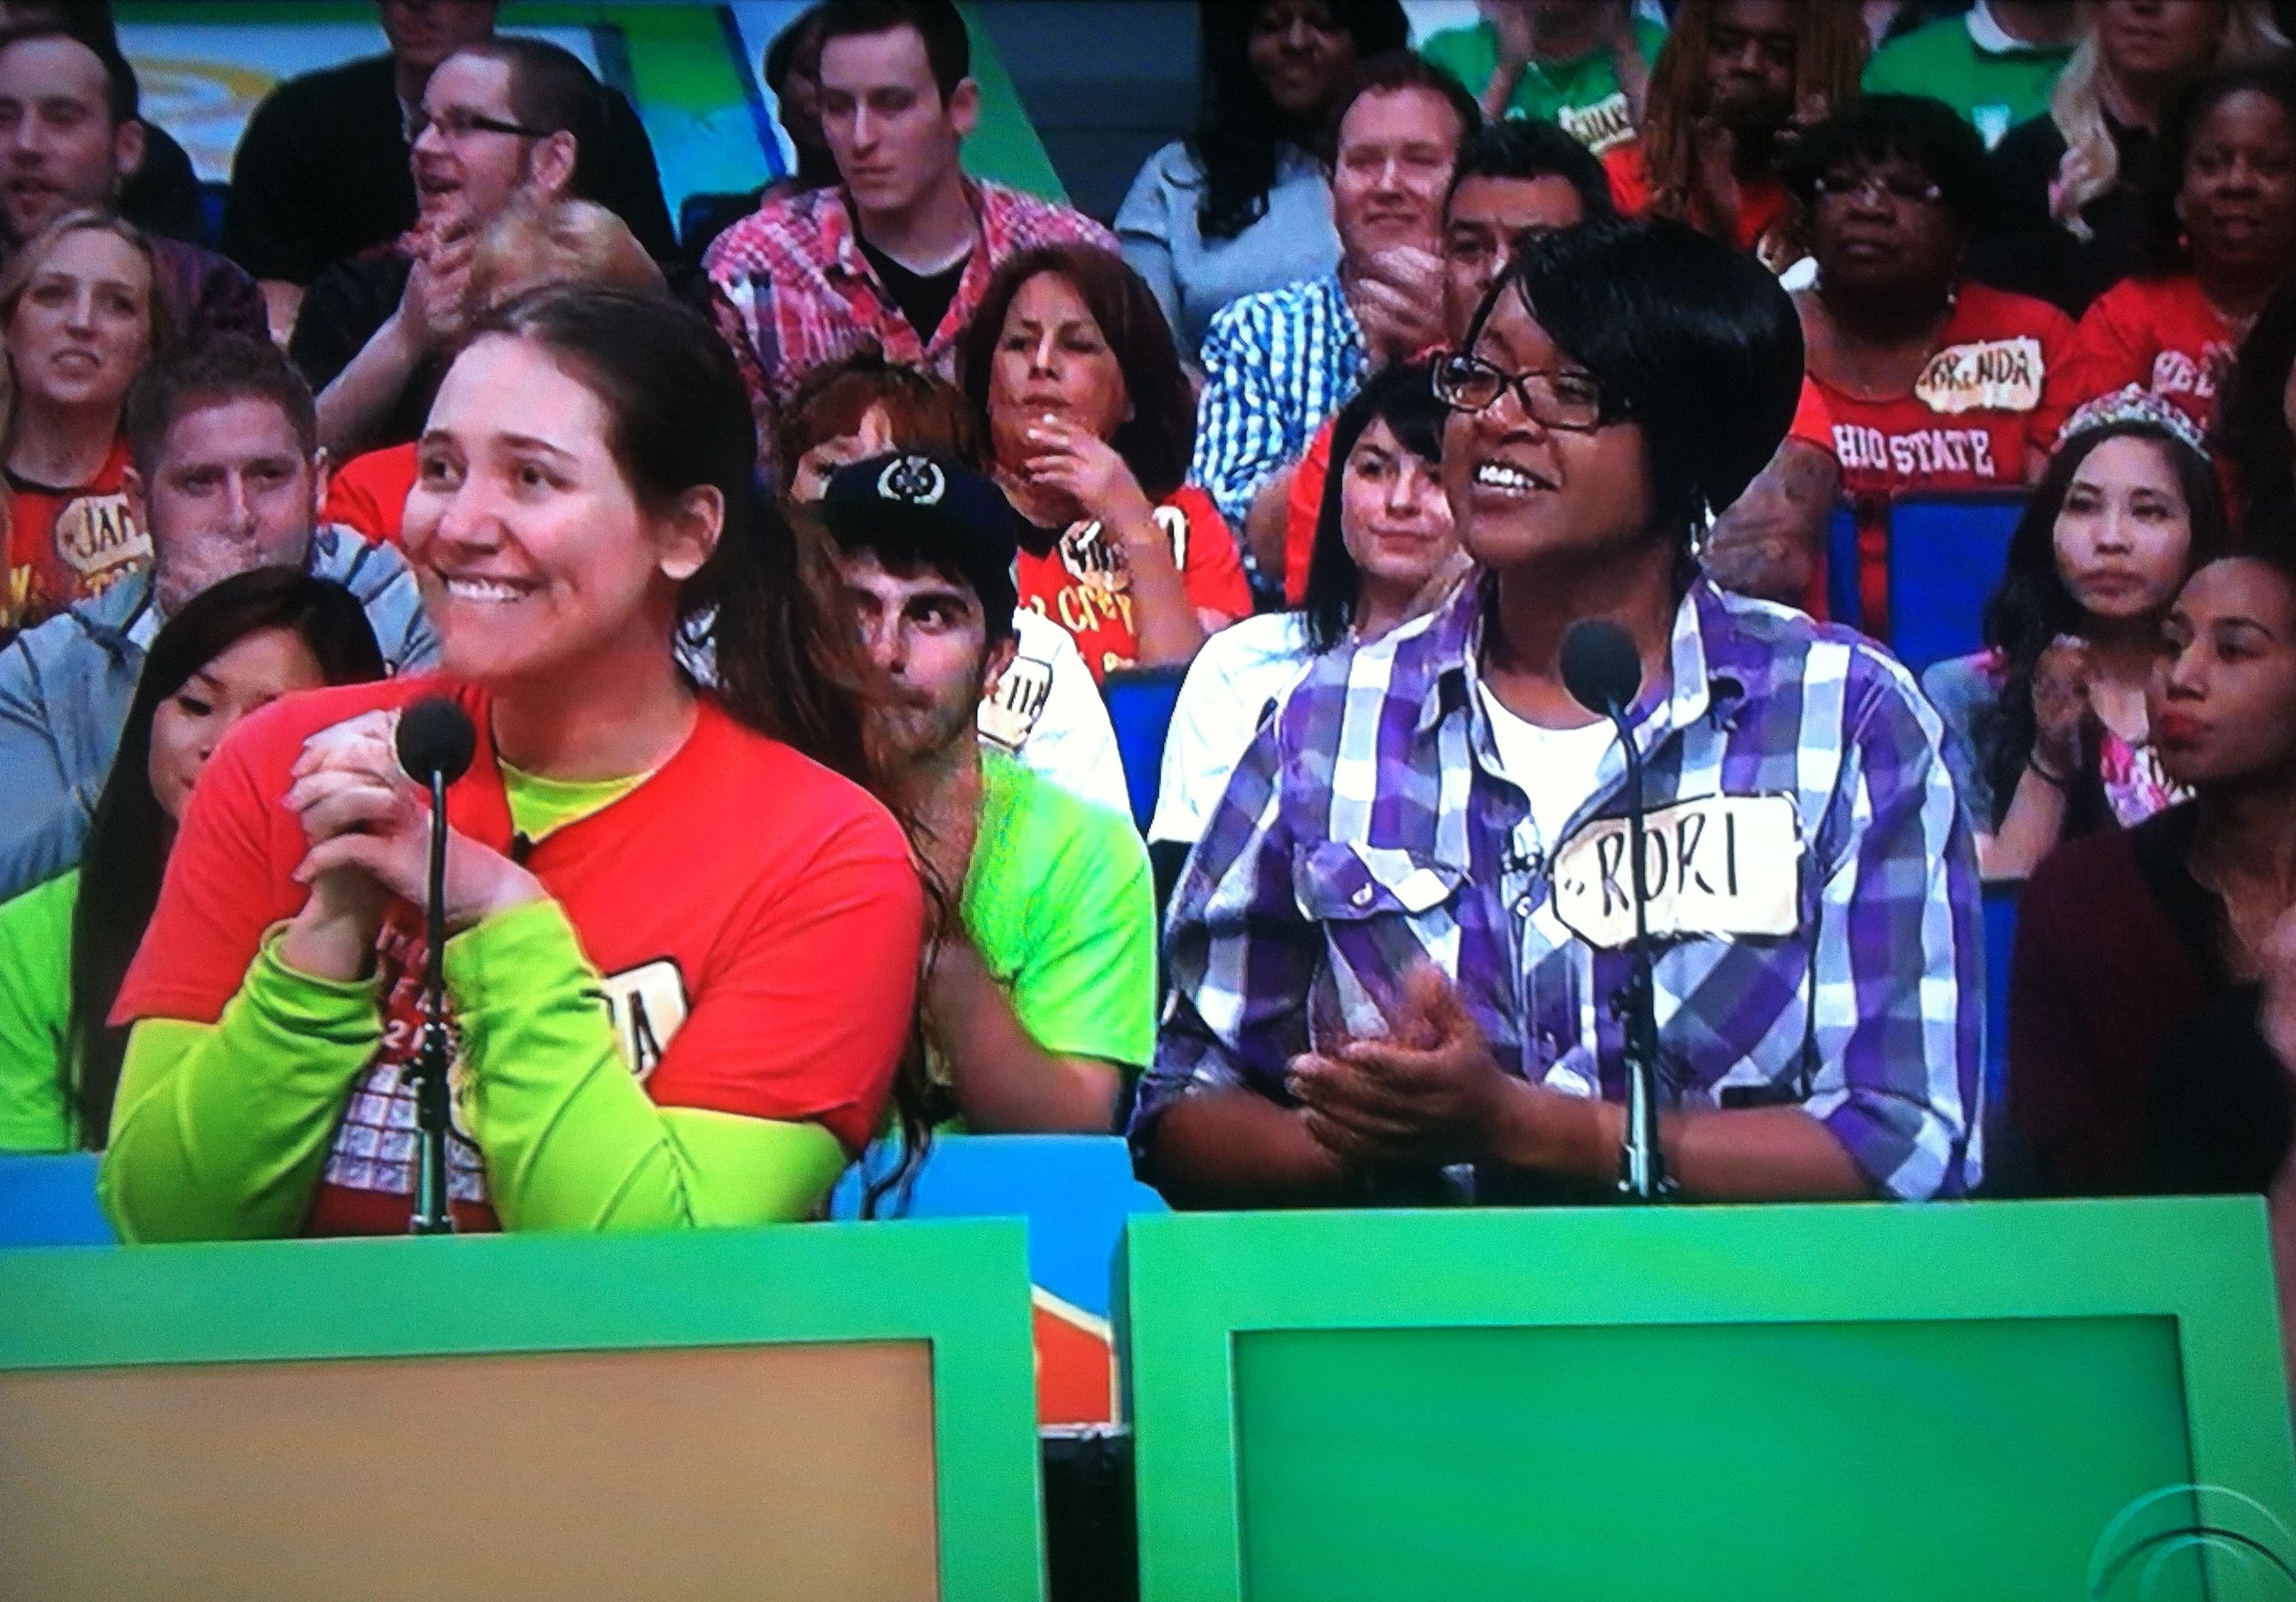 Aurora De Lucia in contestant's row on The Price is Right, looking like she really wants those camcorders